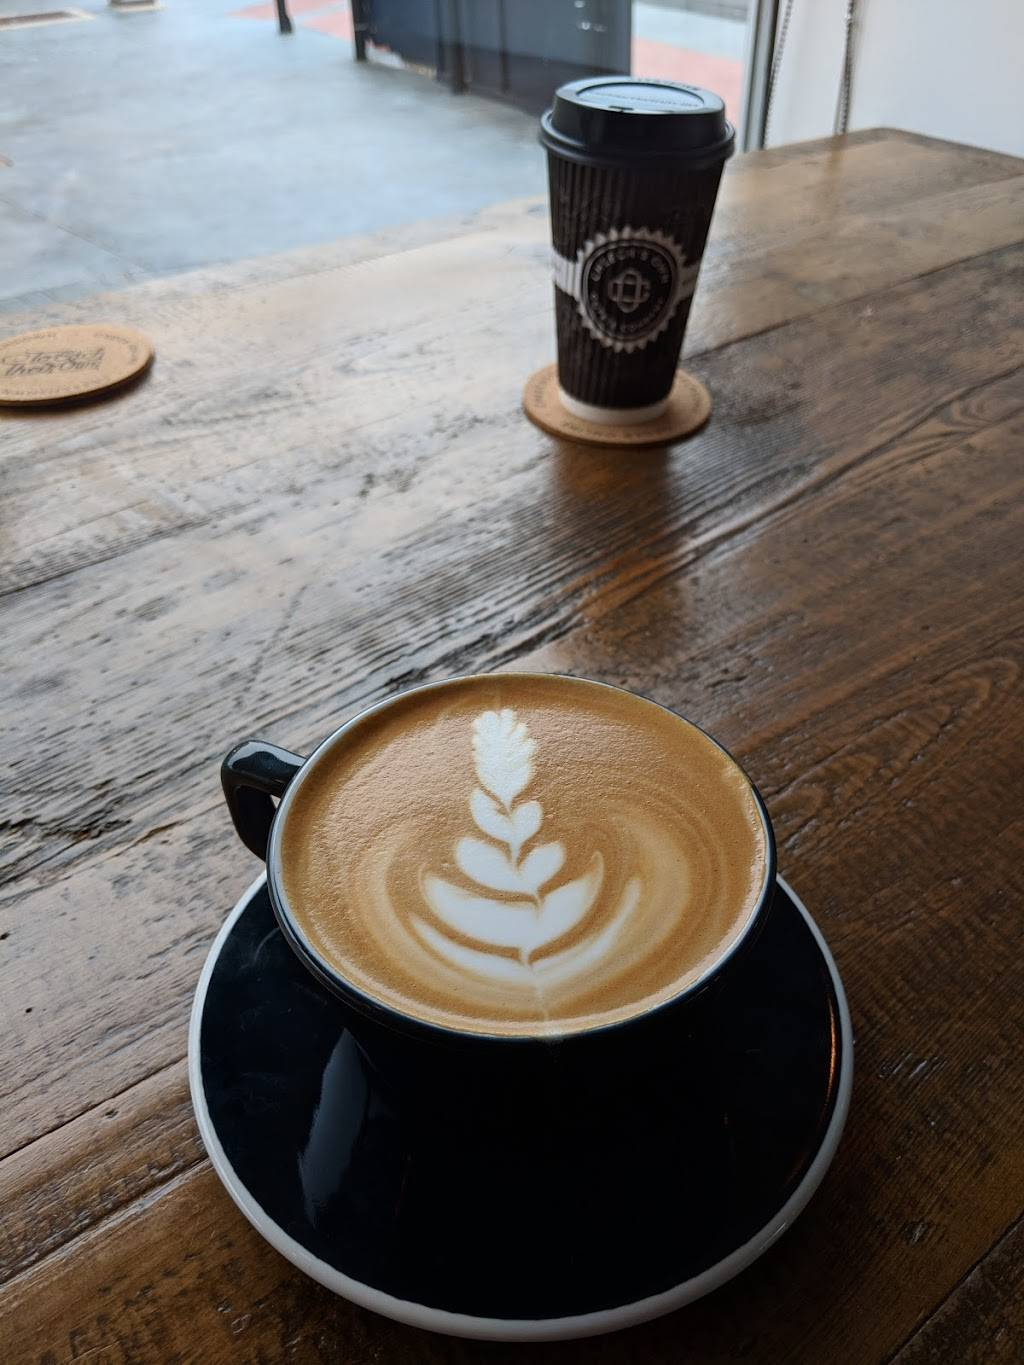 Cheechs Own Coffee Company | cafe | 37 W Main St, Somerville, NJ 08876, USA | 9083931468 OR +1 908-393-1468